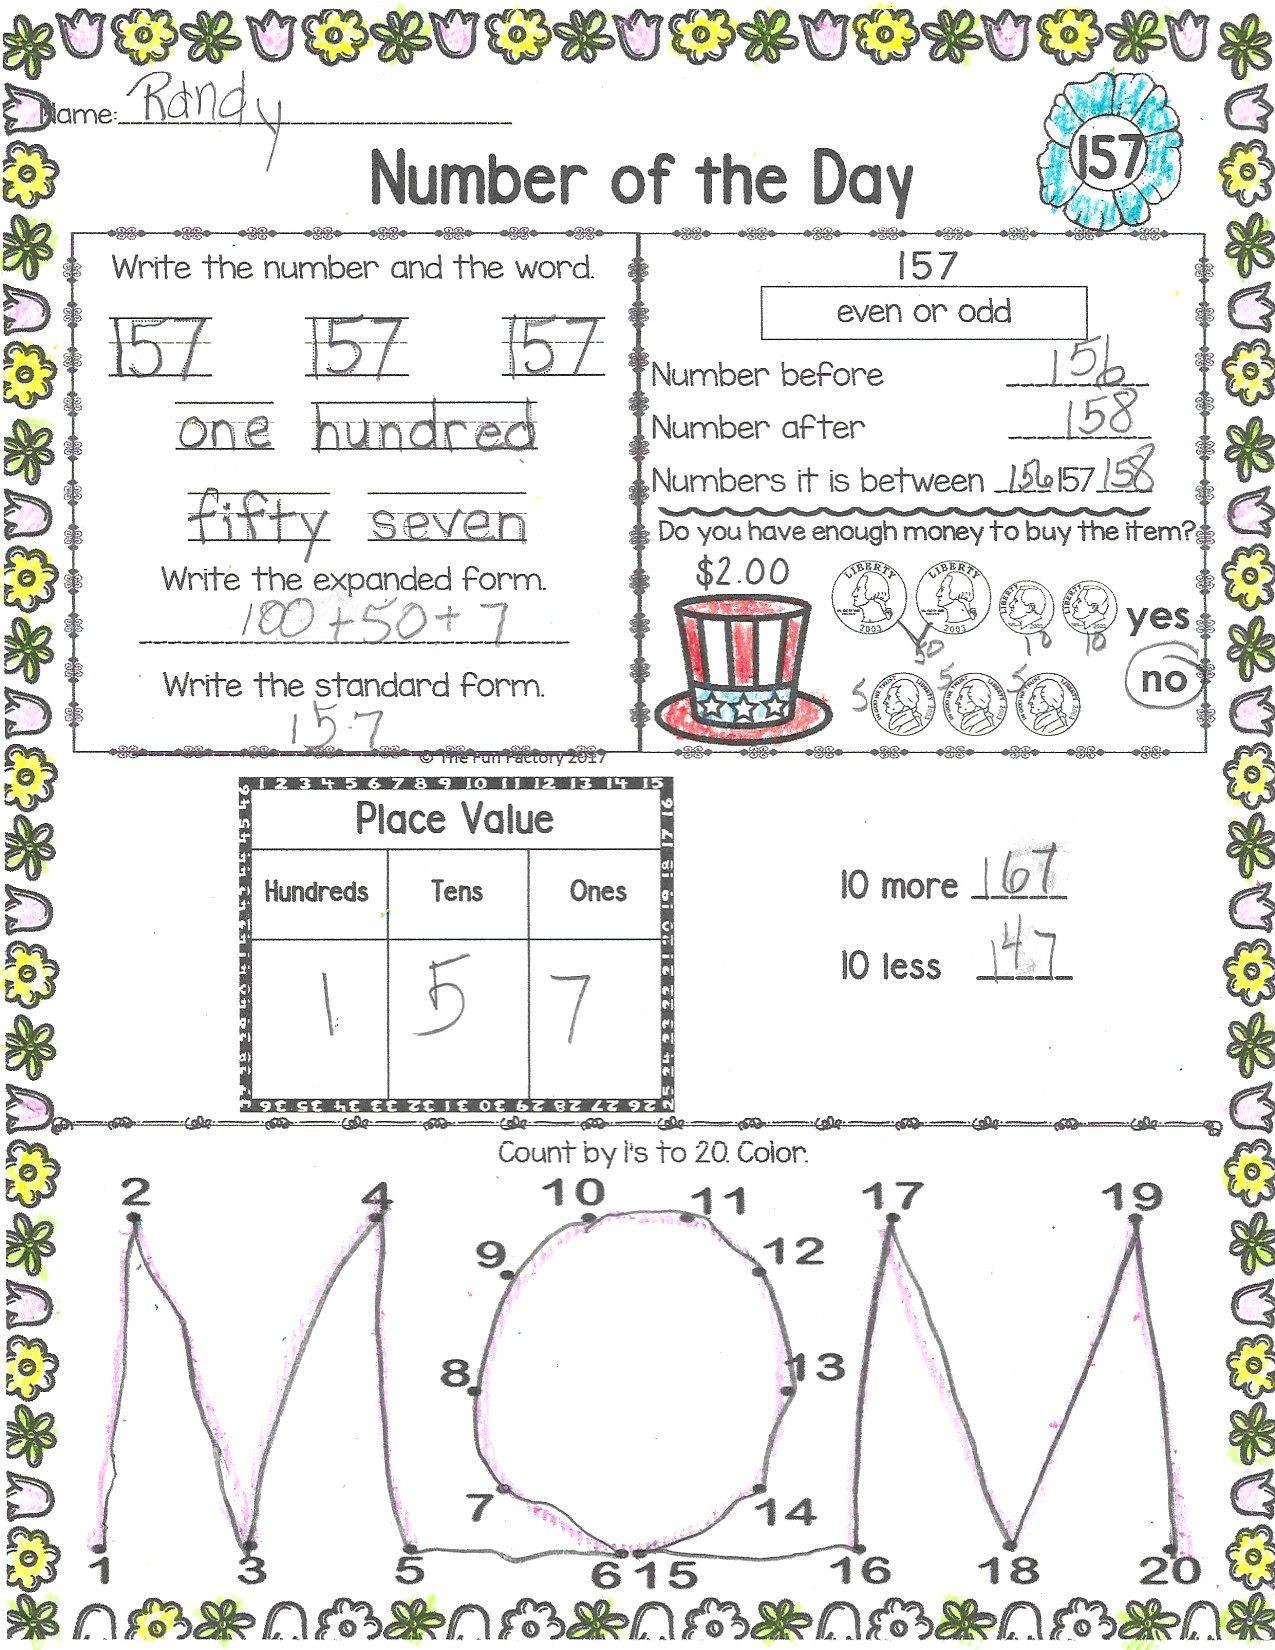 Expanded form Worksheets 1st Grade Pin On the Fun Factory S Teachers Pay Teachers Resources and